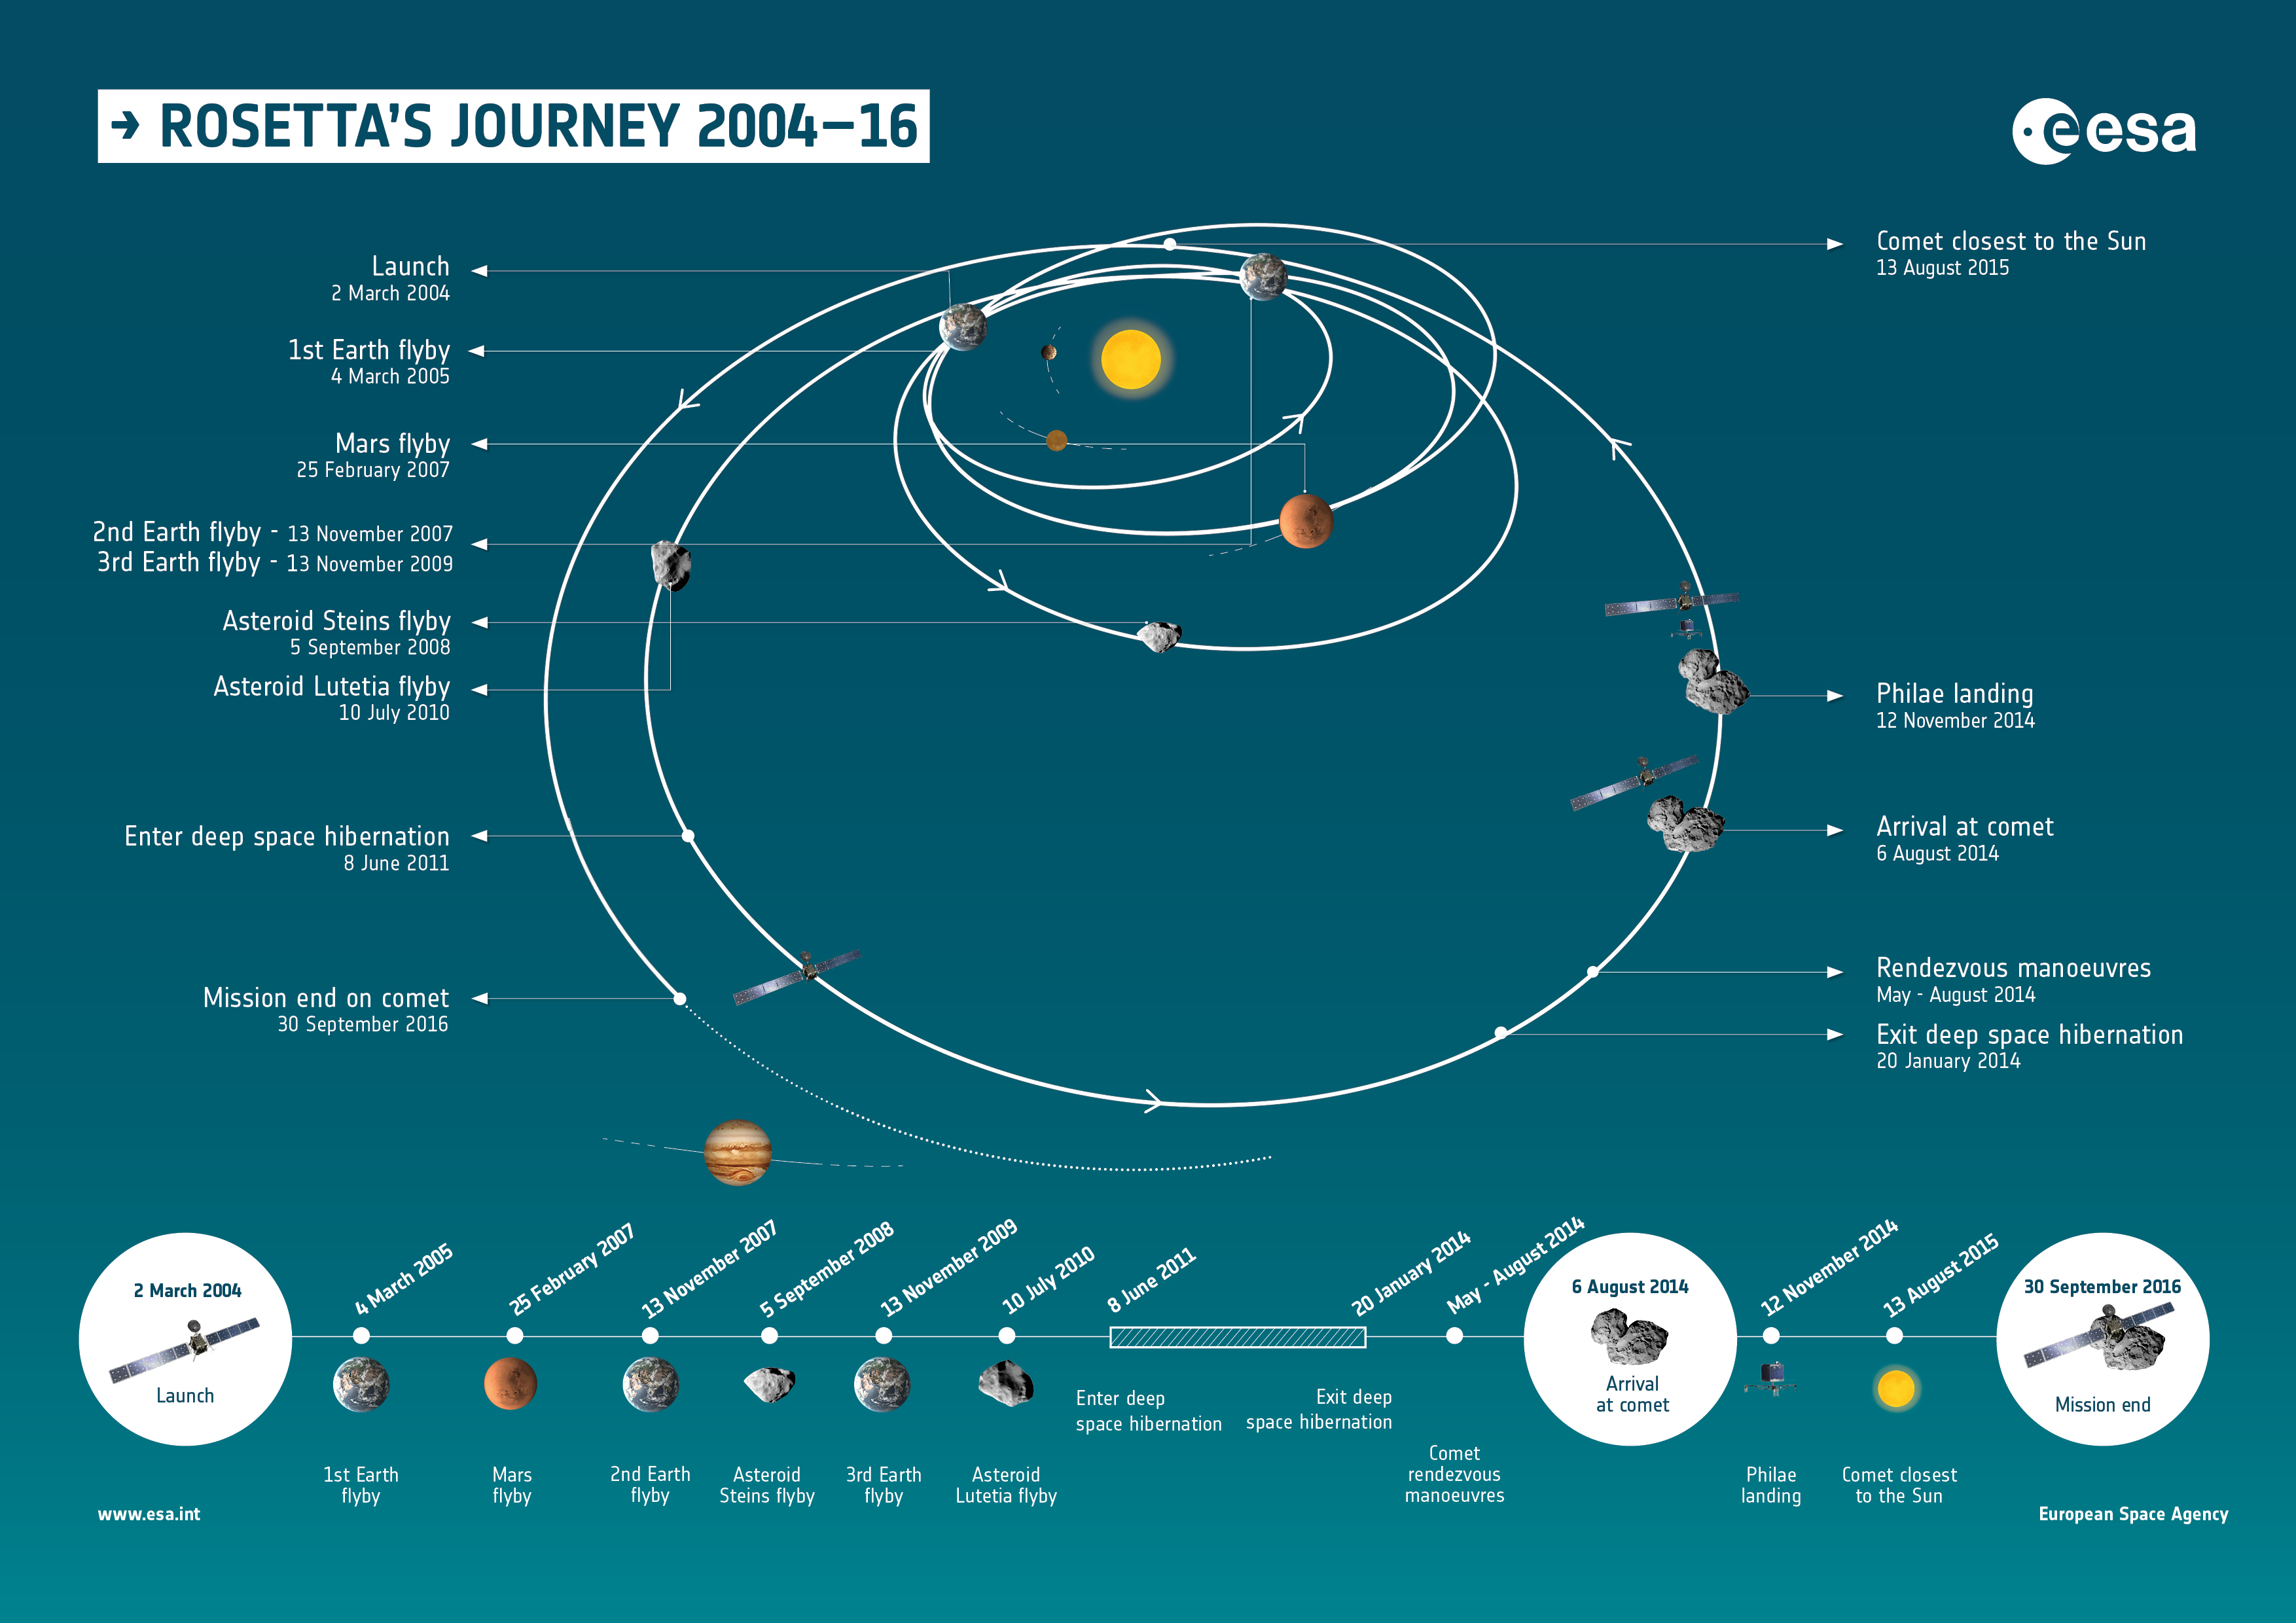 ESA Science & Technology: Rosetta's journey and timeline